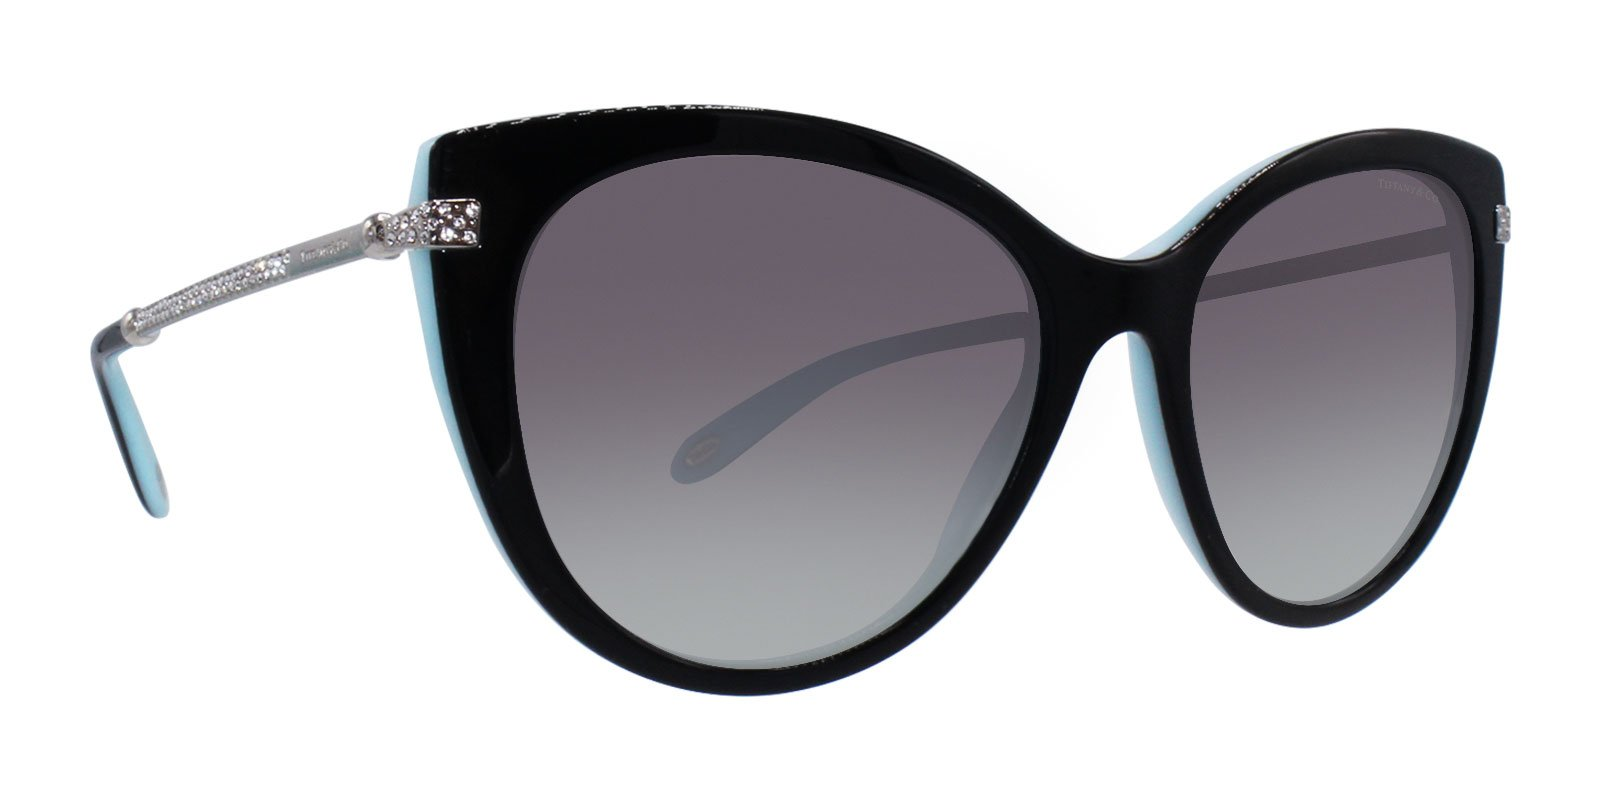 Tiffany - TF4143B Black Oval Women Sunglasses - 55mm-Sunglasses-Designer Eyes